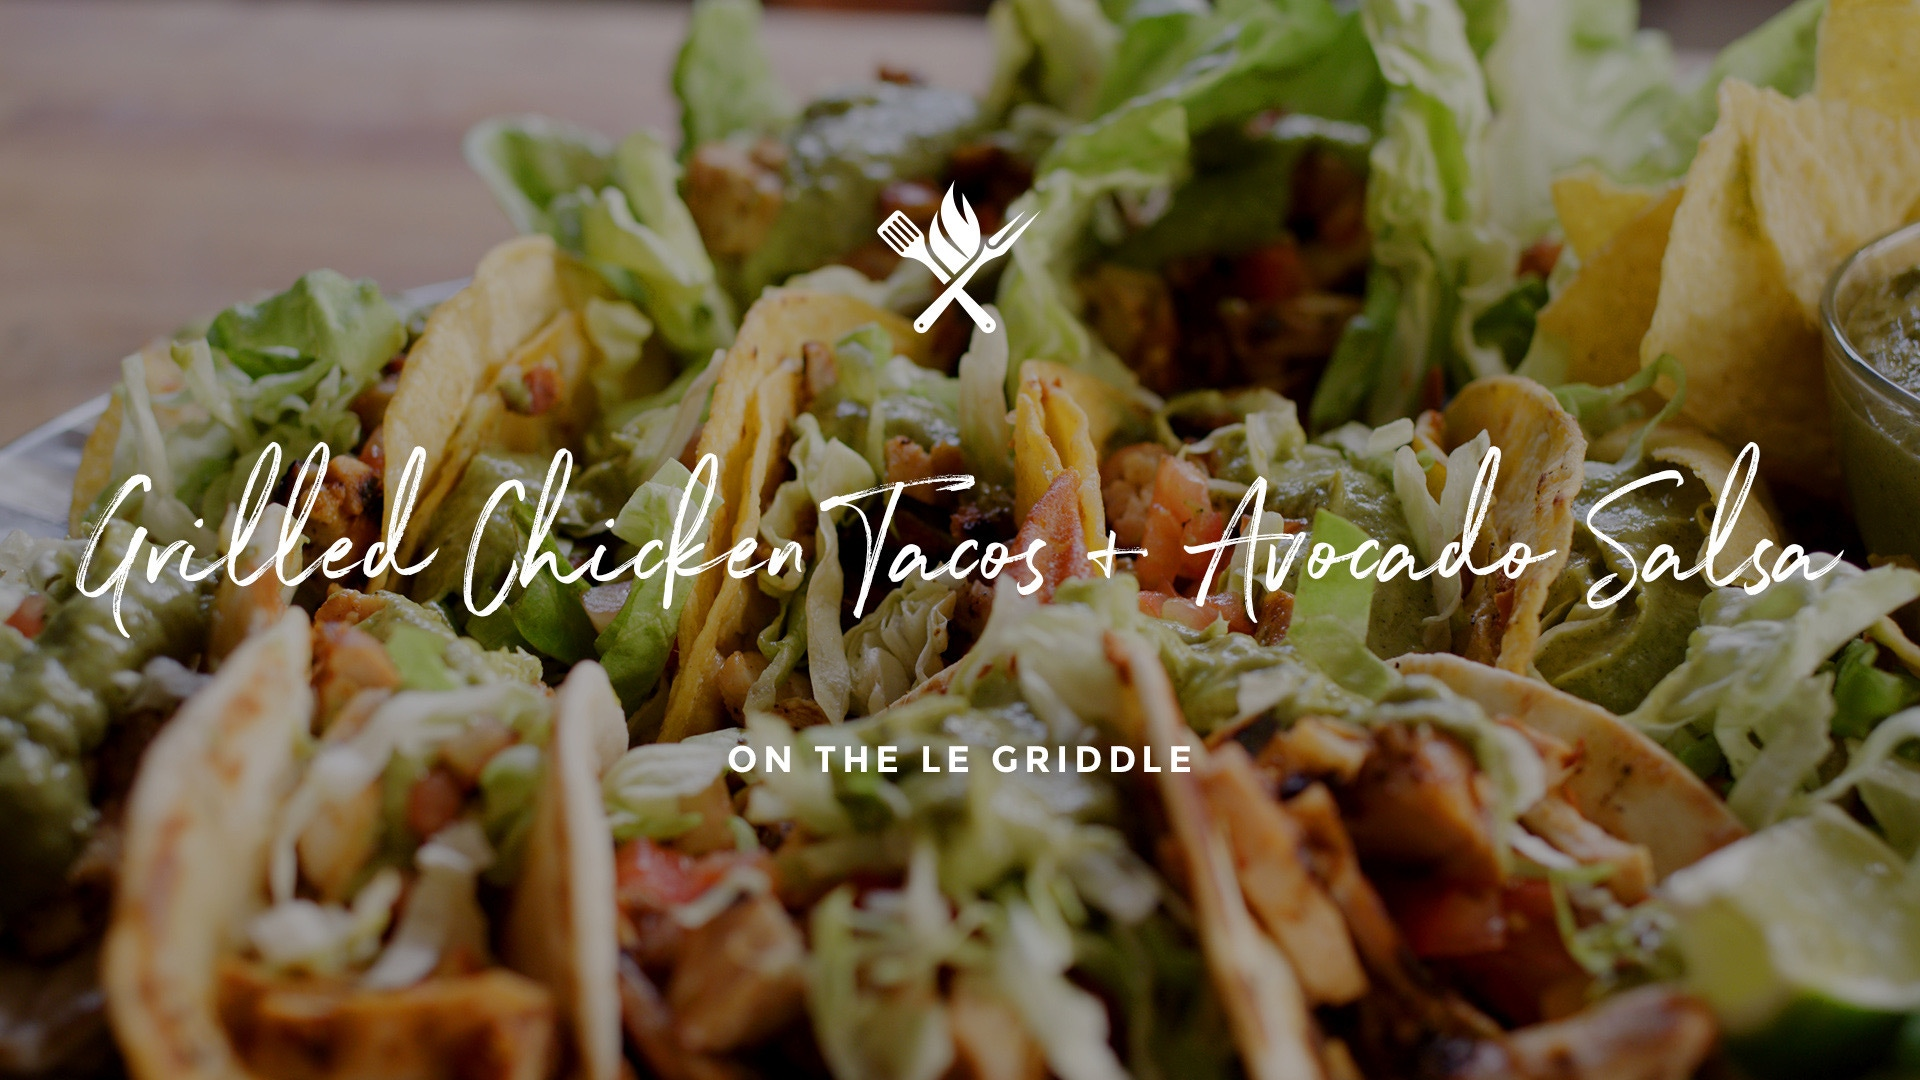 How to make Grilled Chicken Tacos with Avocado Salsa